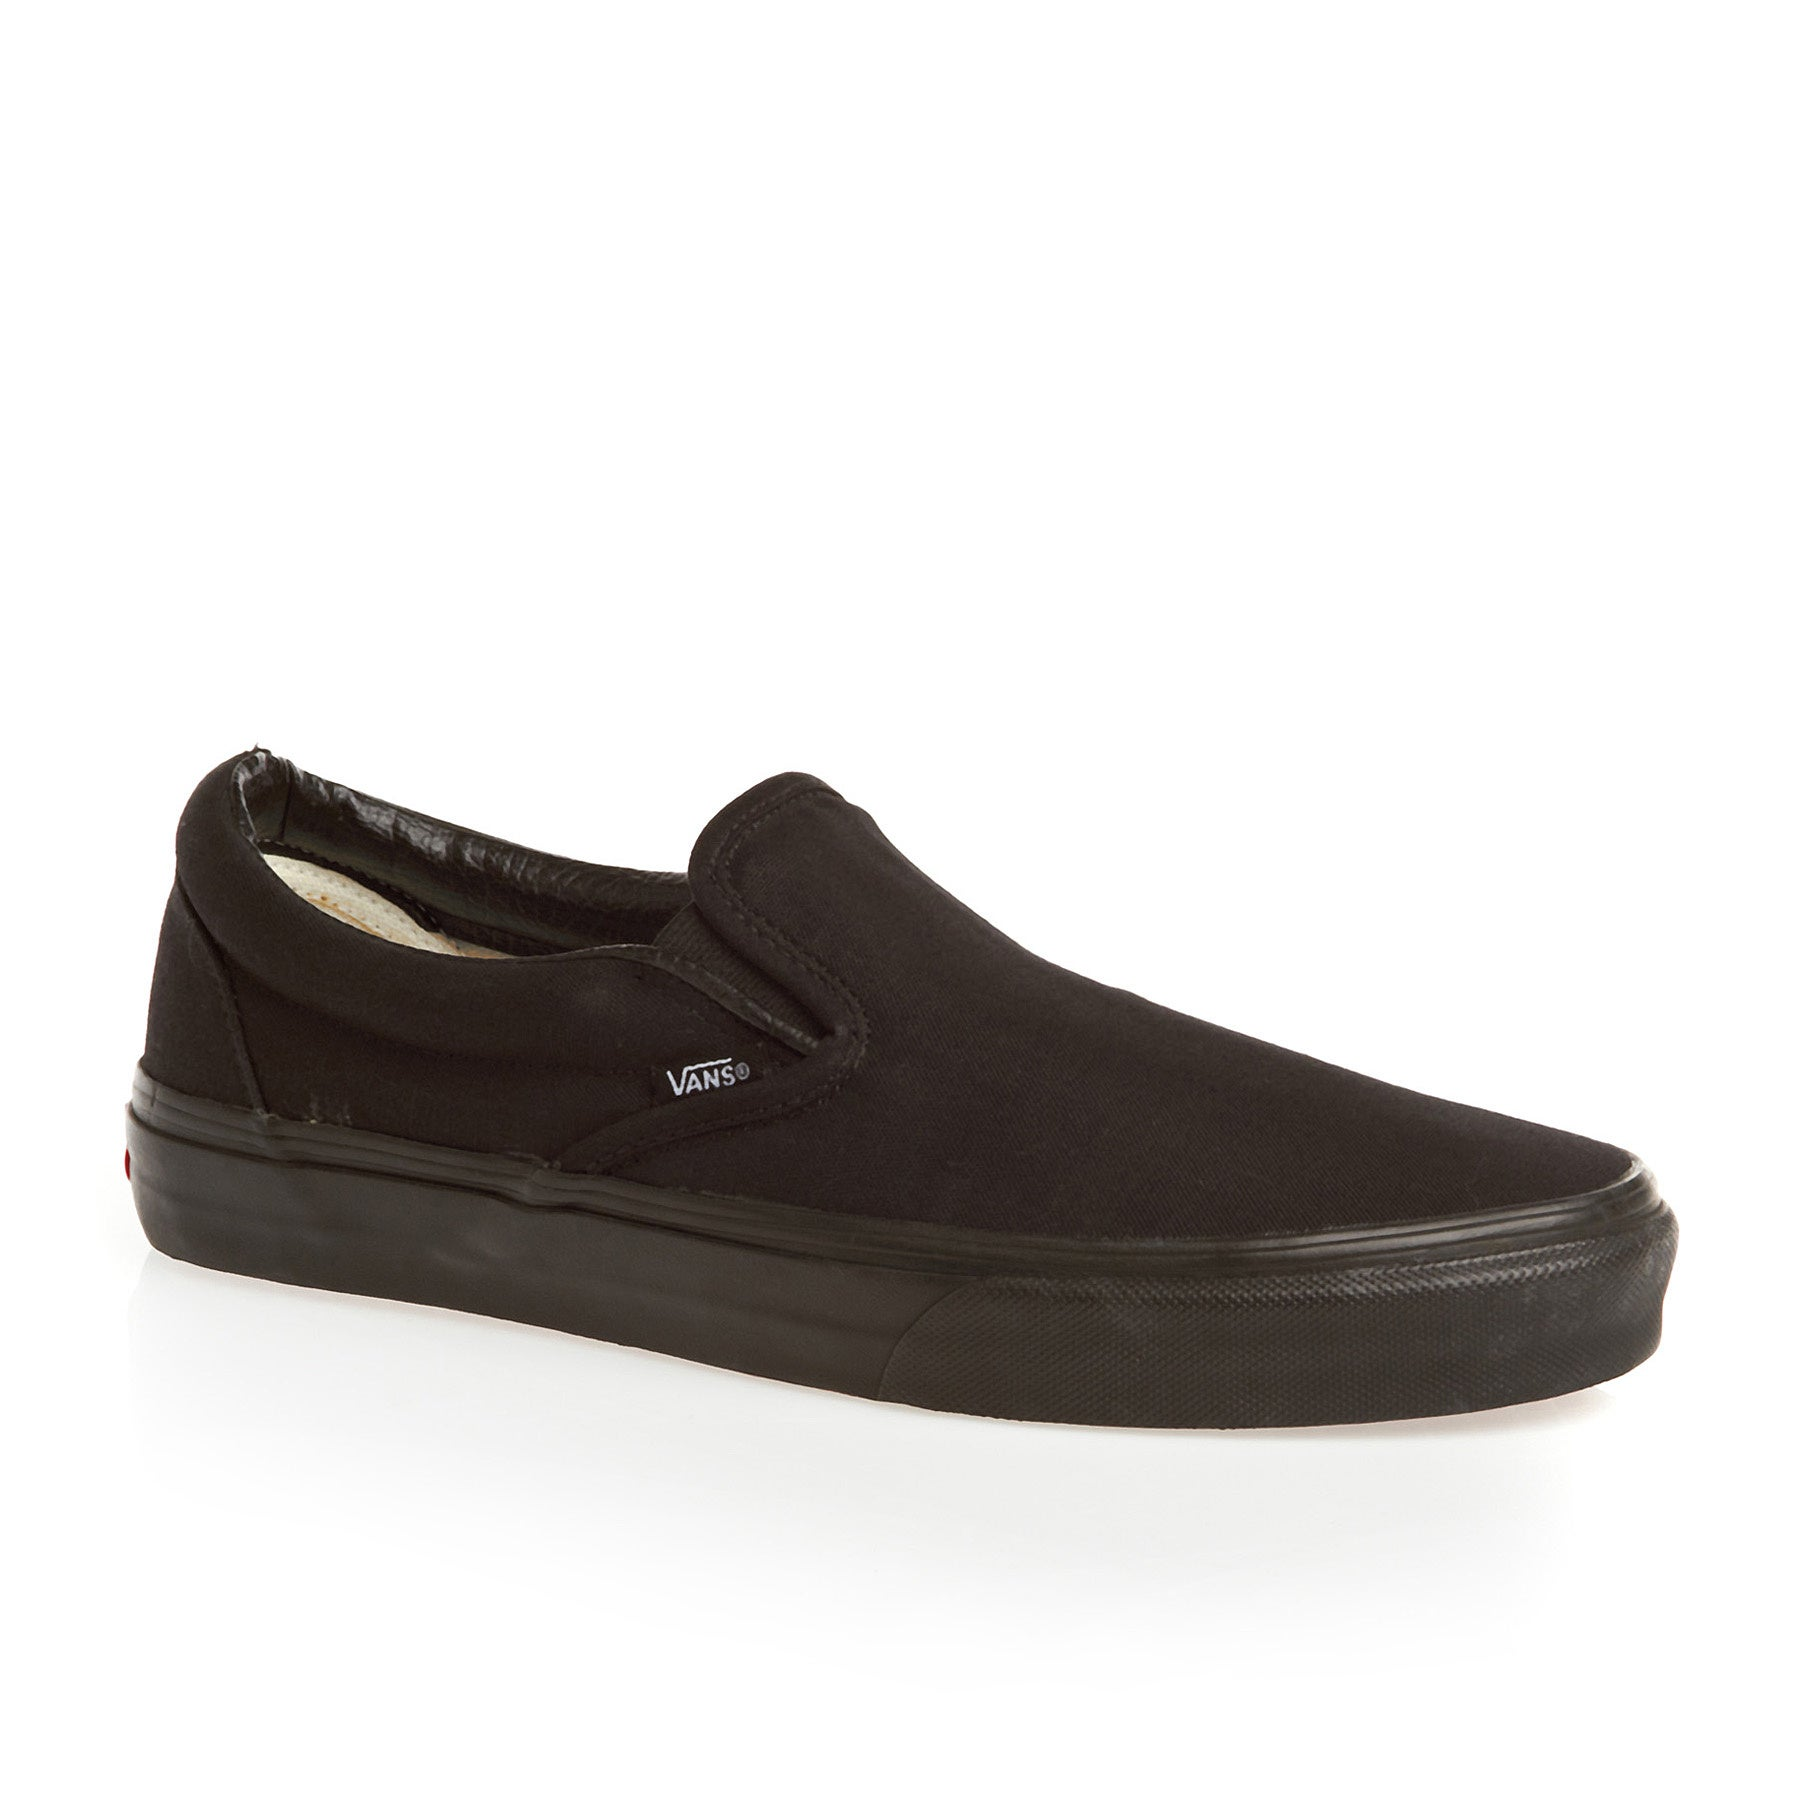 8ec8ab7a6a Vans Classic Slip On Shoes available from Surfdome